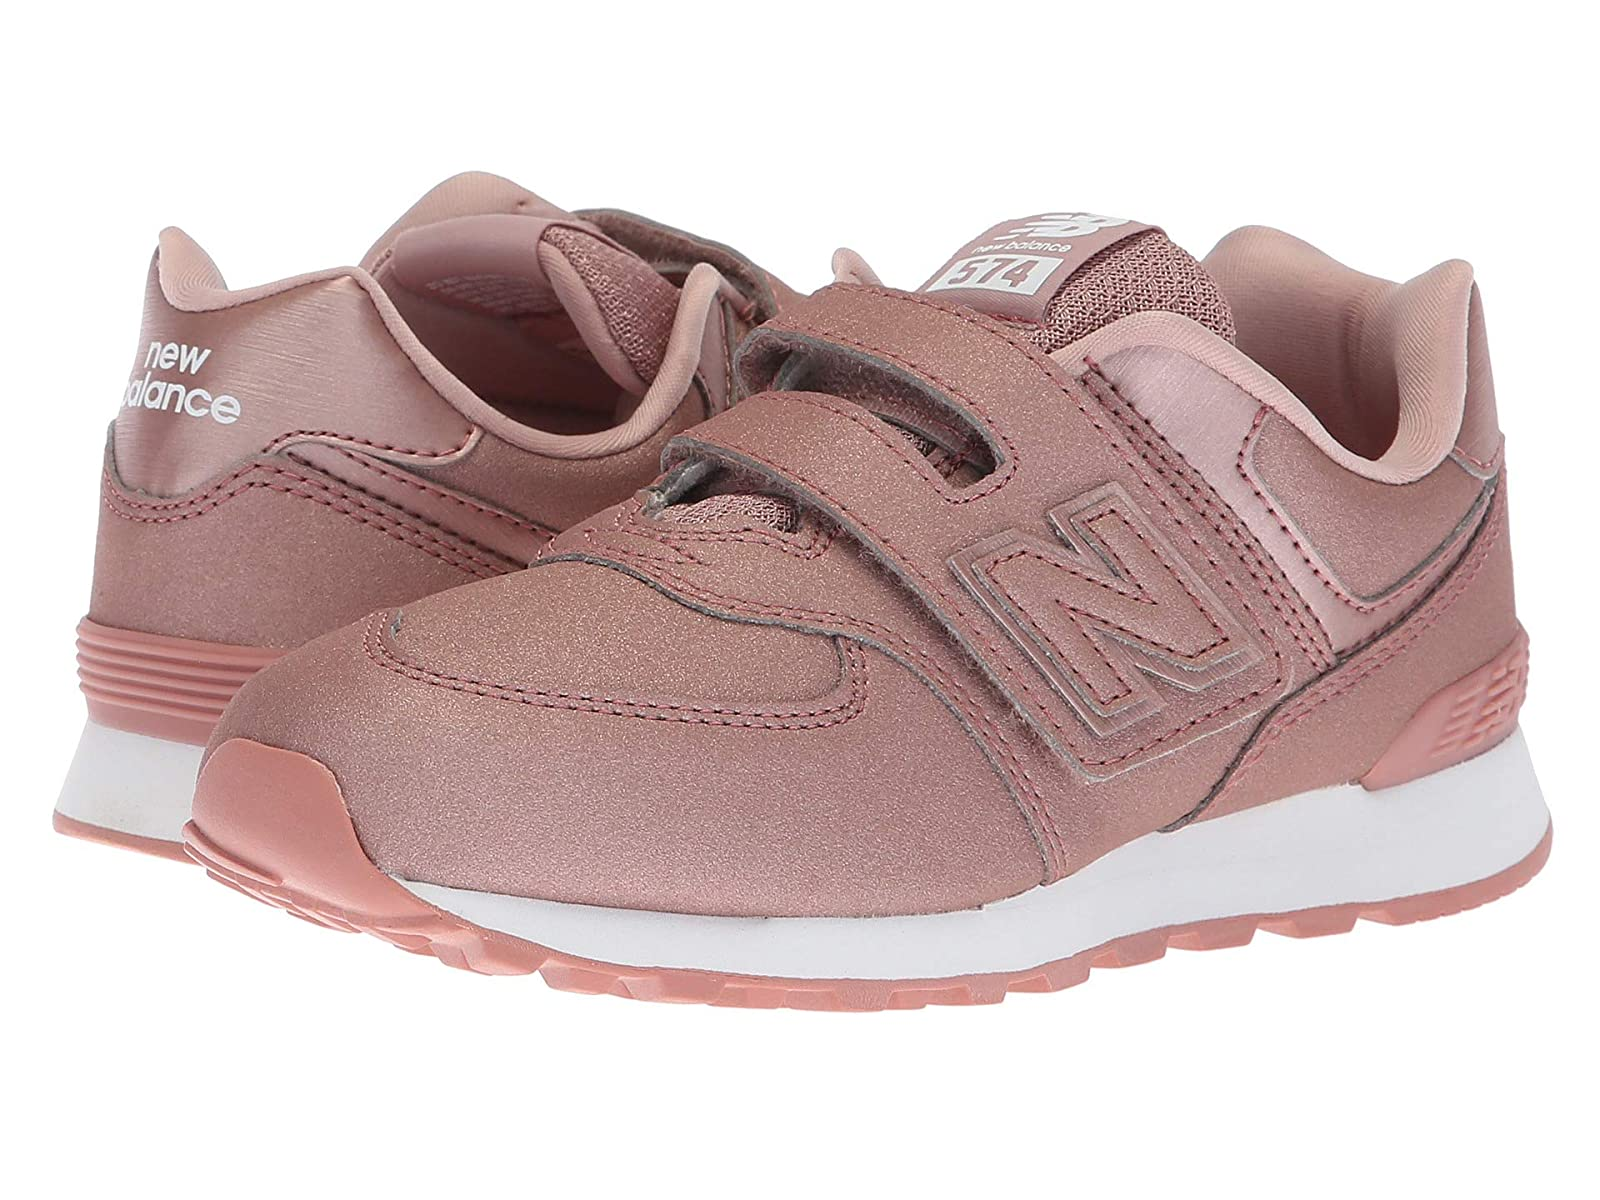 New Balance Kids YV574v1 (Little Kid/Big Kid)Atmospheric grades have affordable shoes